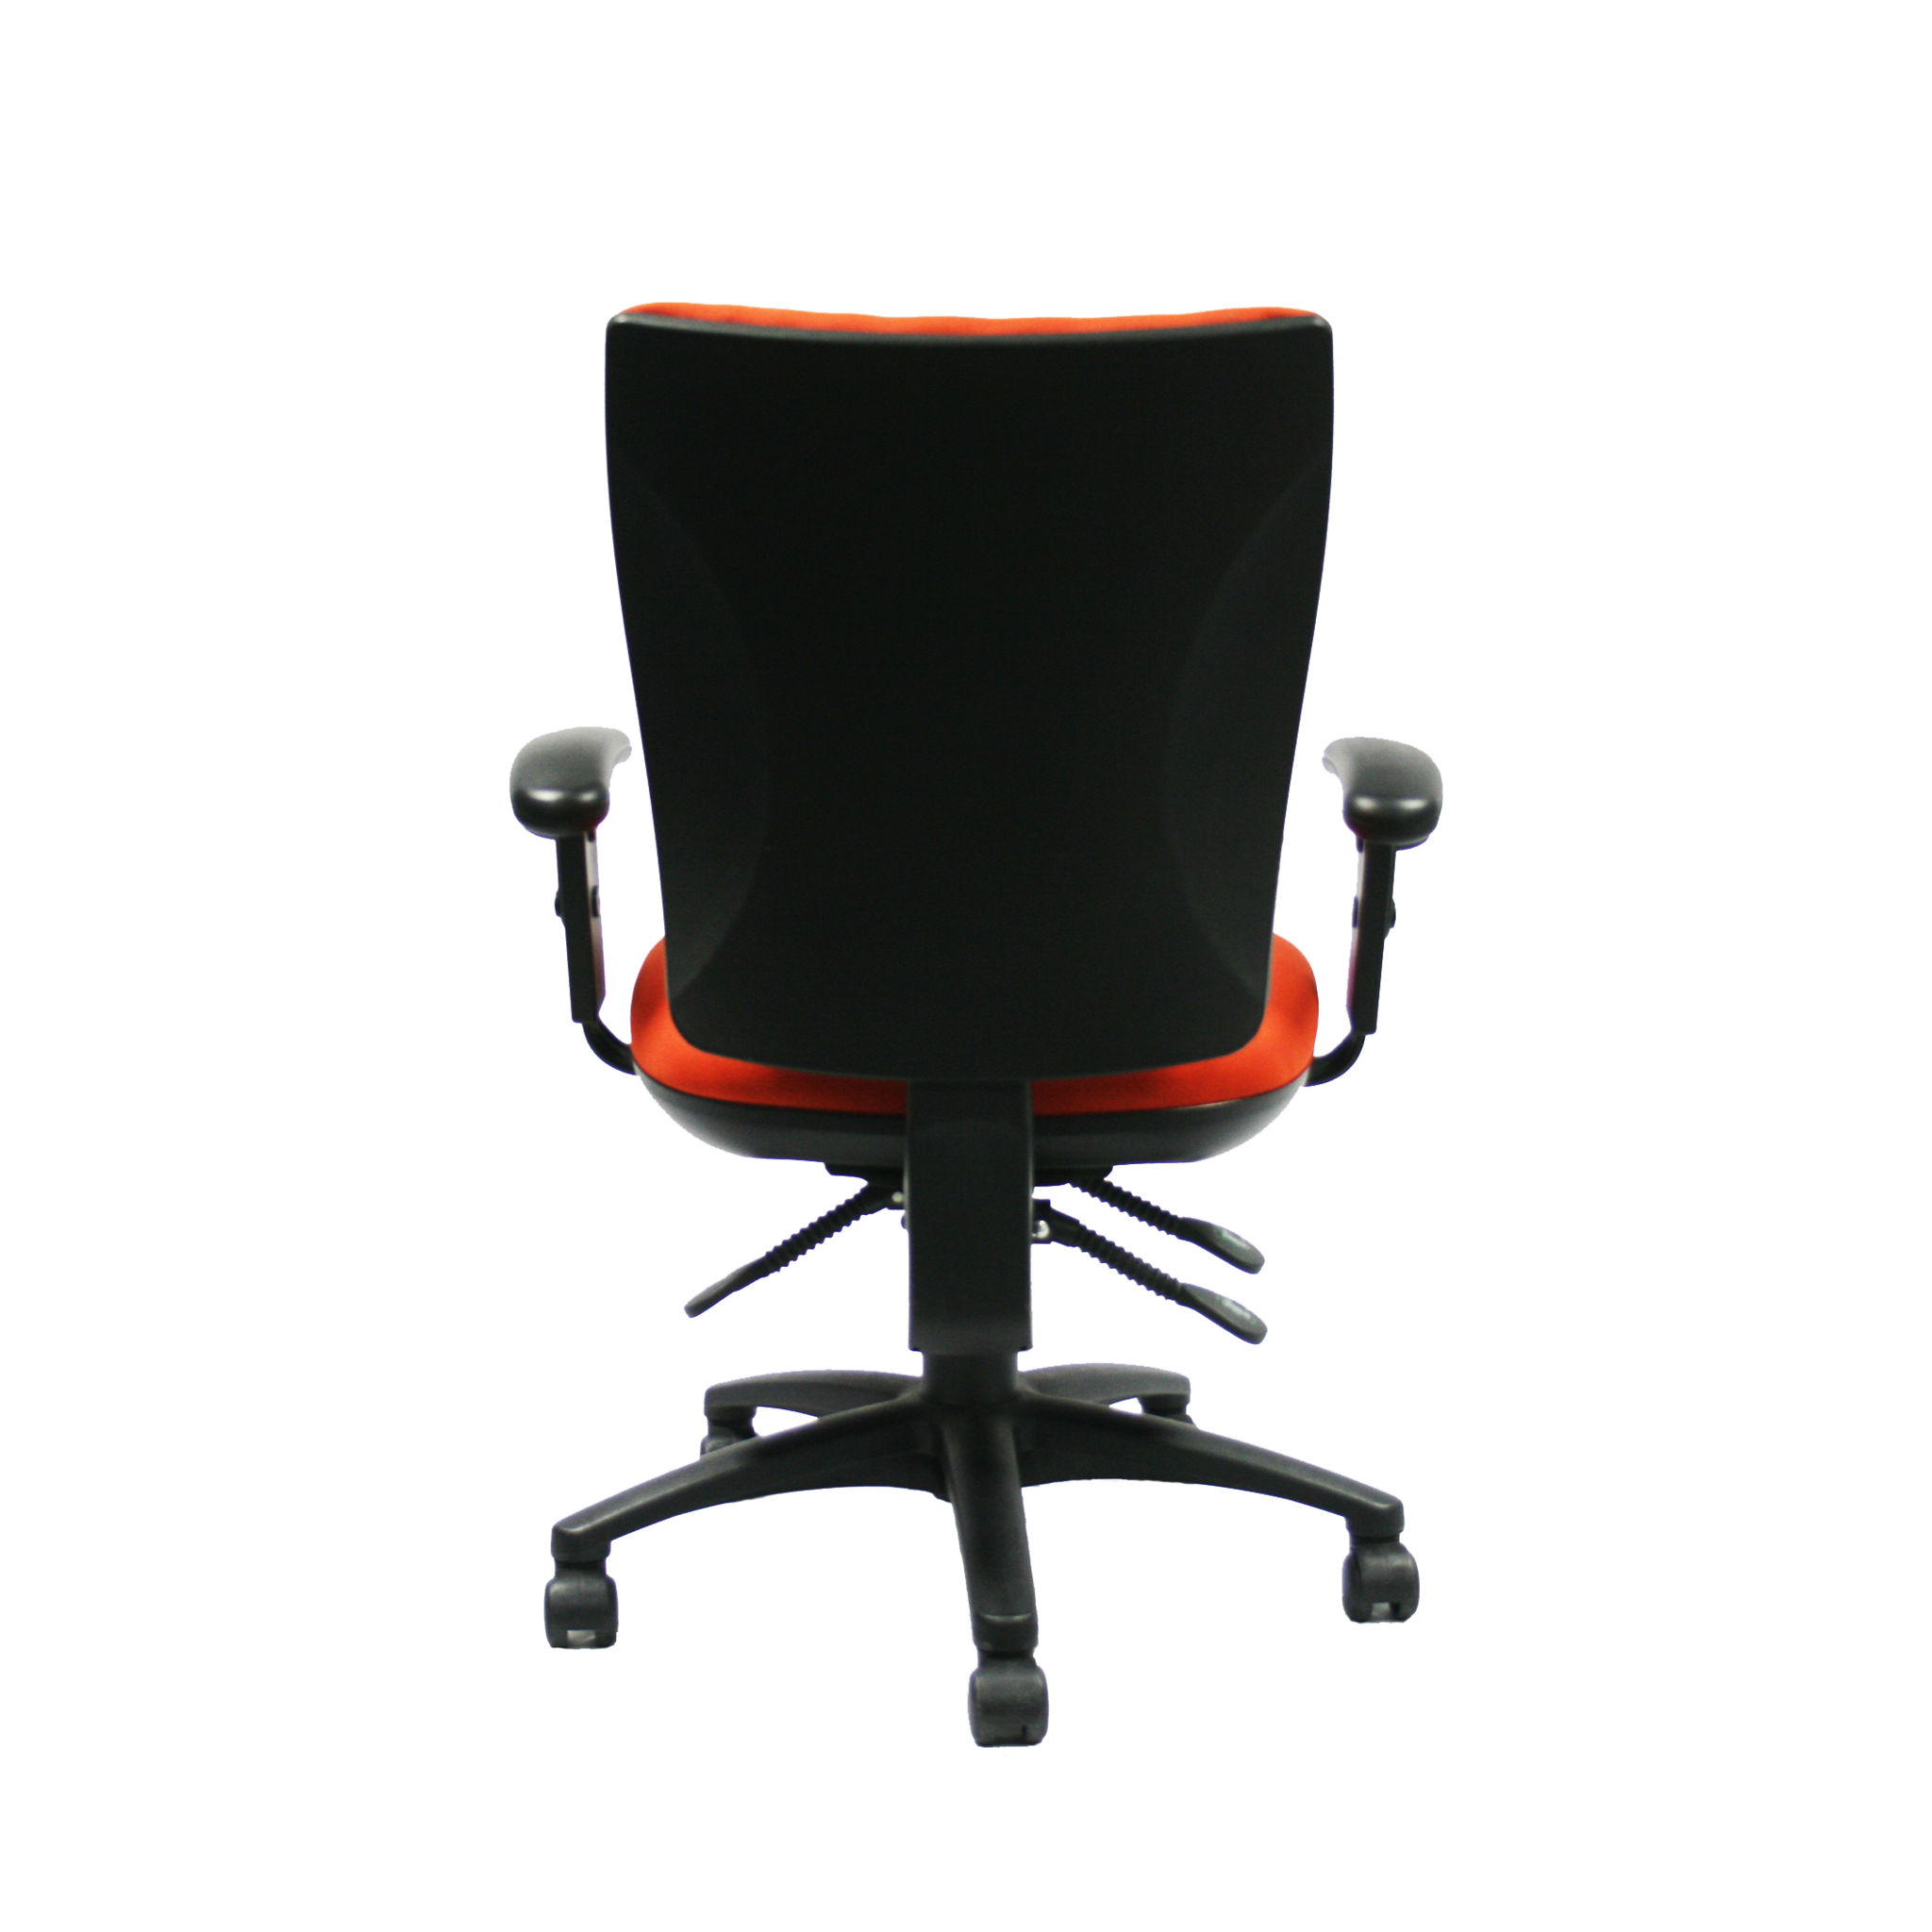 TAN Office Chair With Adjustable Arms Back View